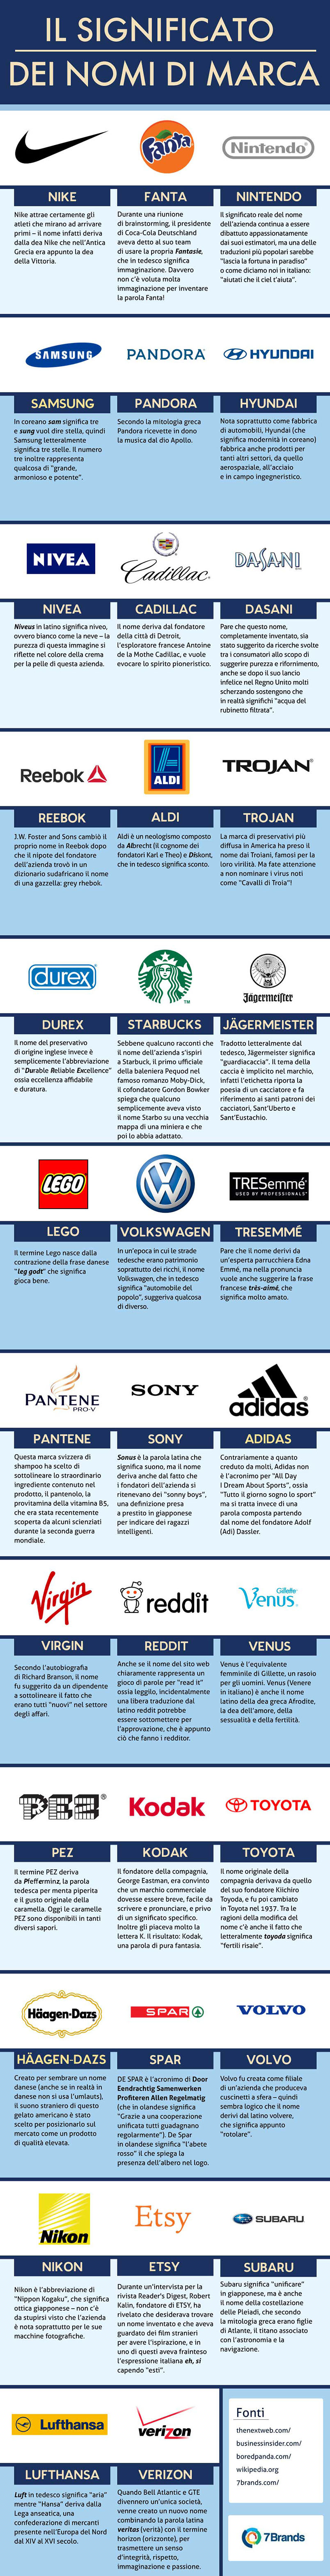 meaning of brand names_IT